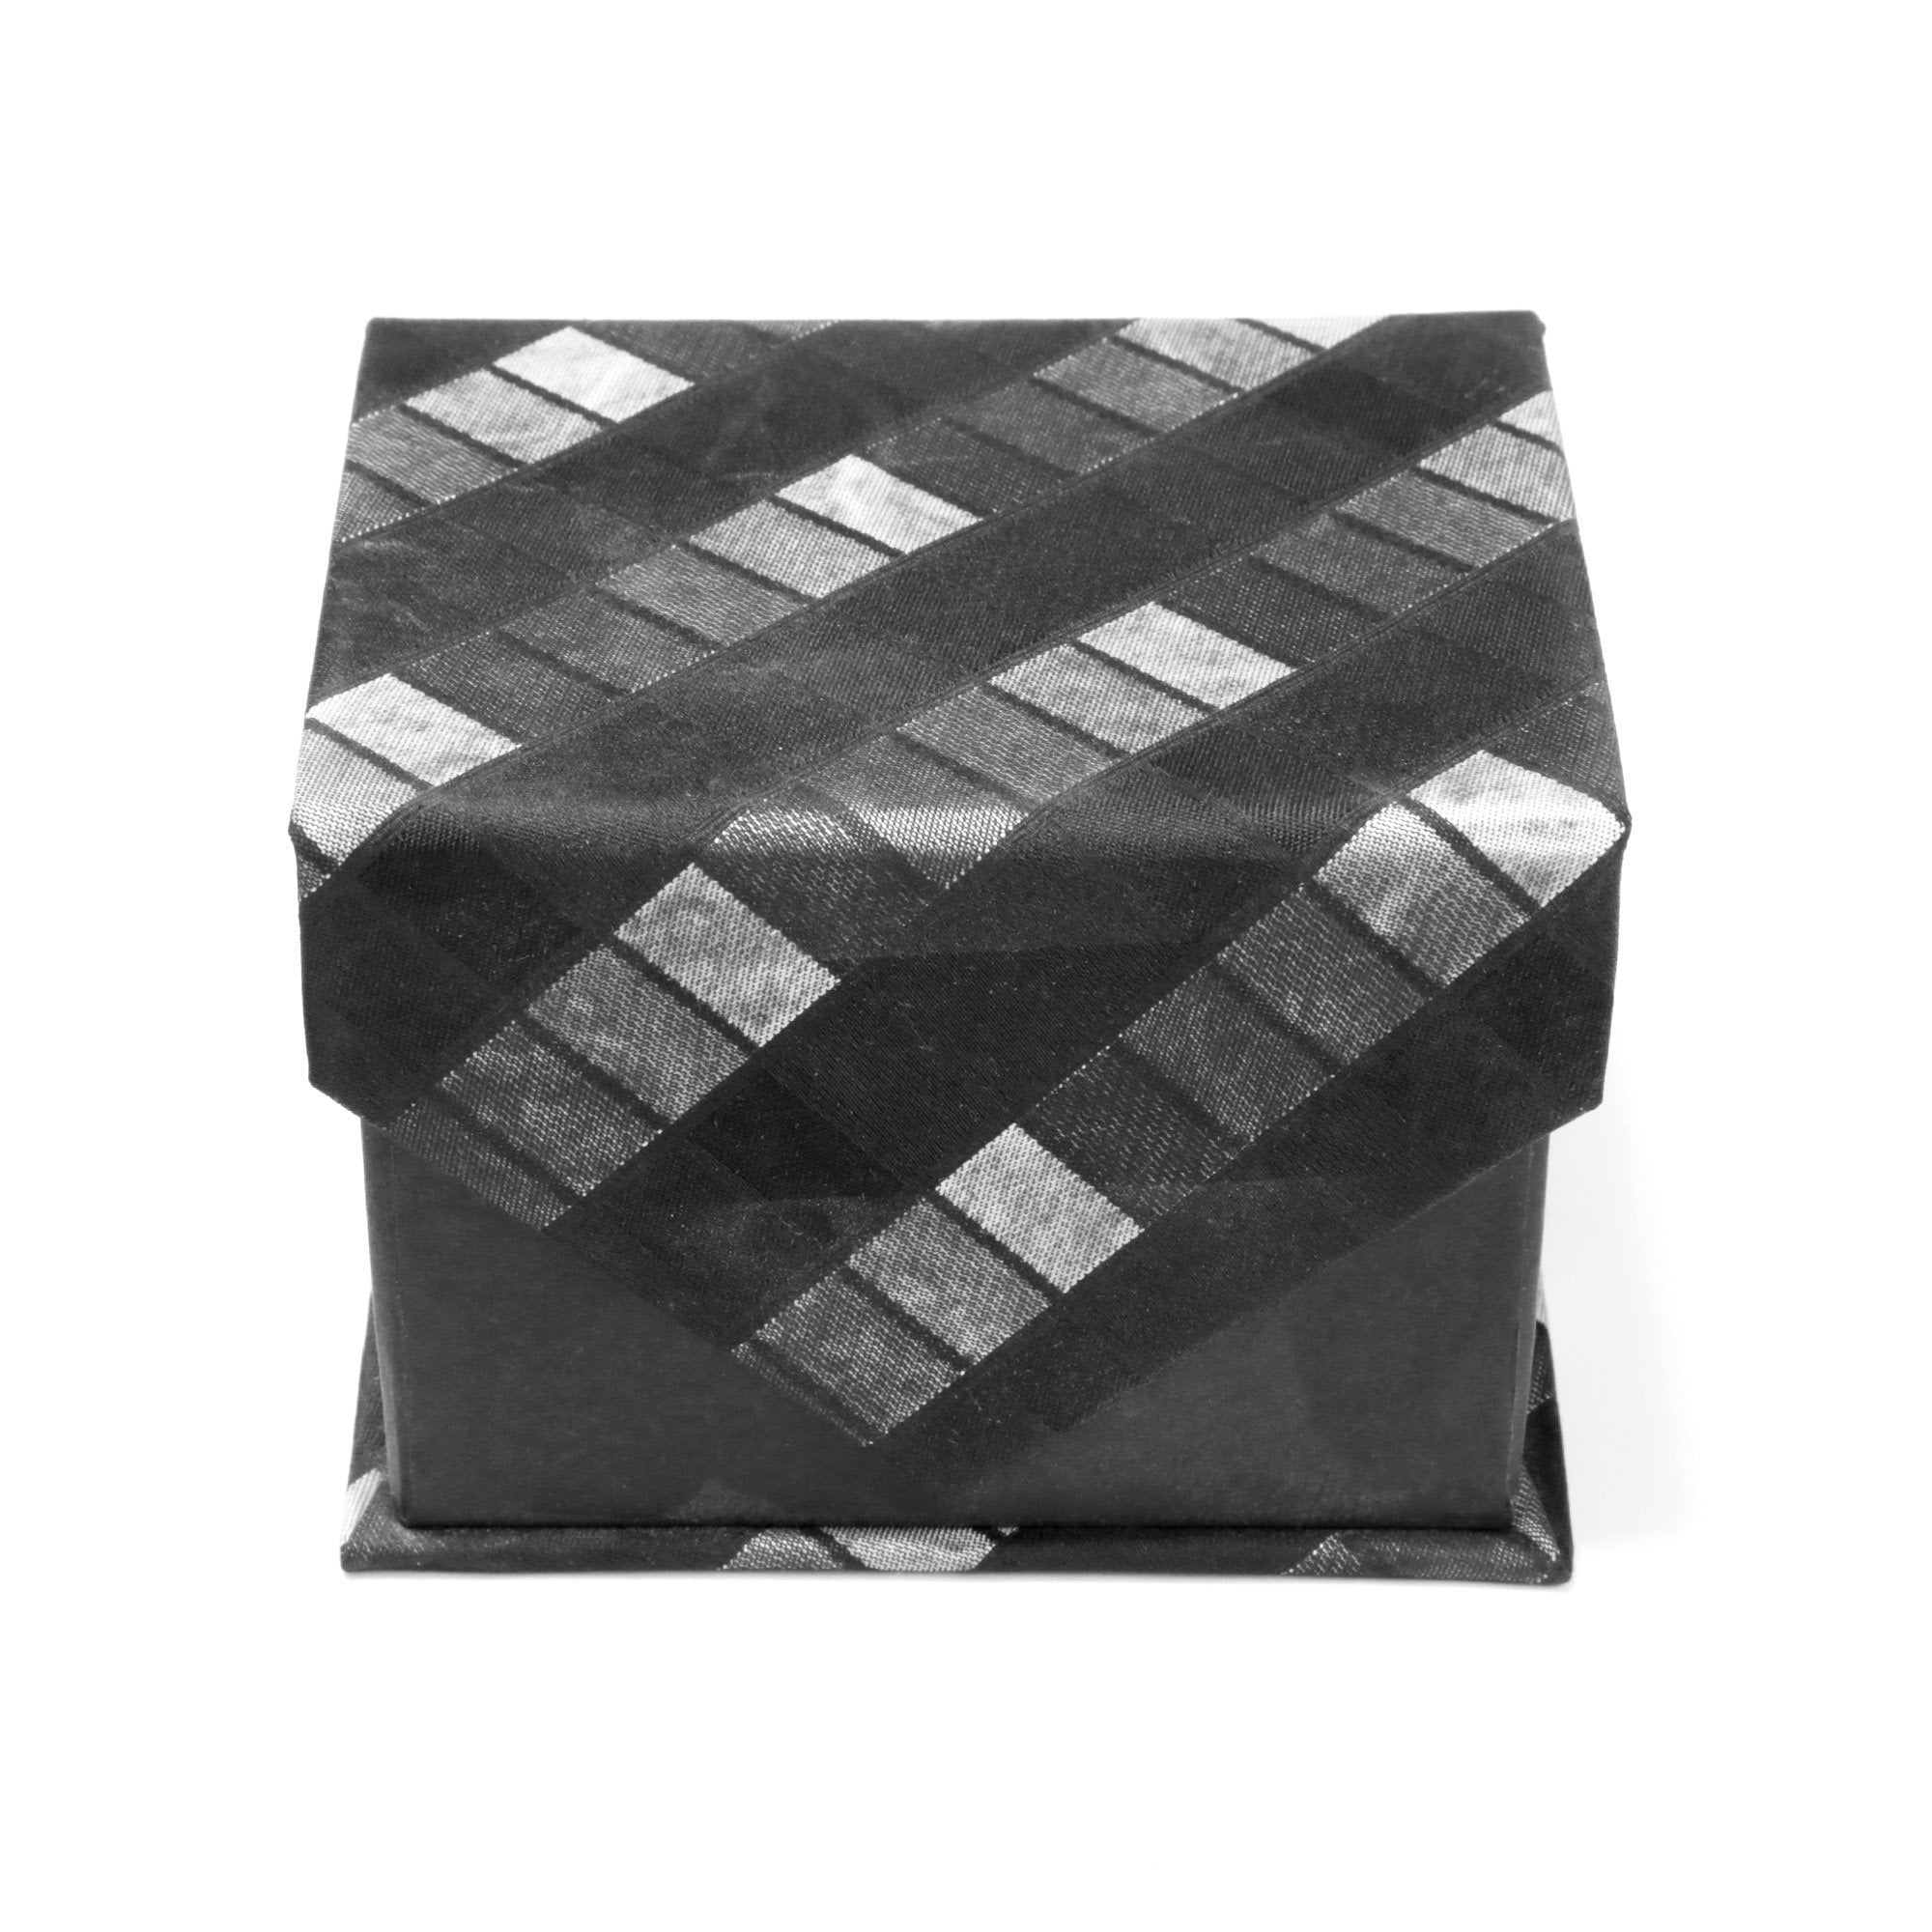 Men's Shiny Black& White Cross-Striped Design 4-pc Necktie Box Set - Giorgio's Menswear